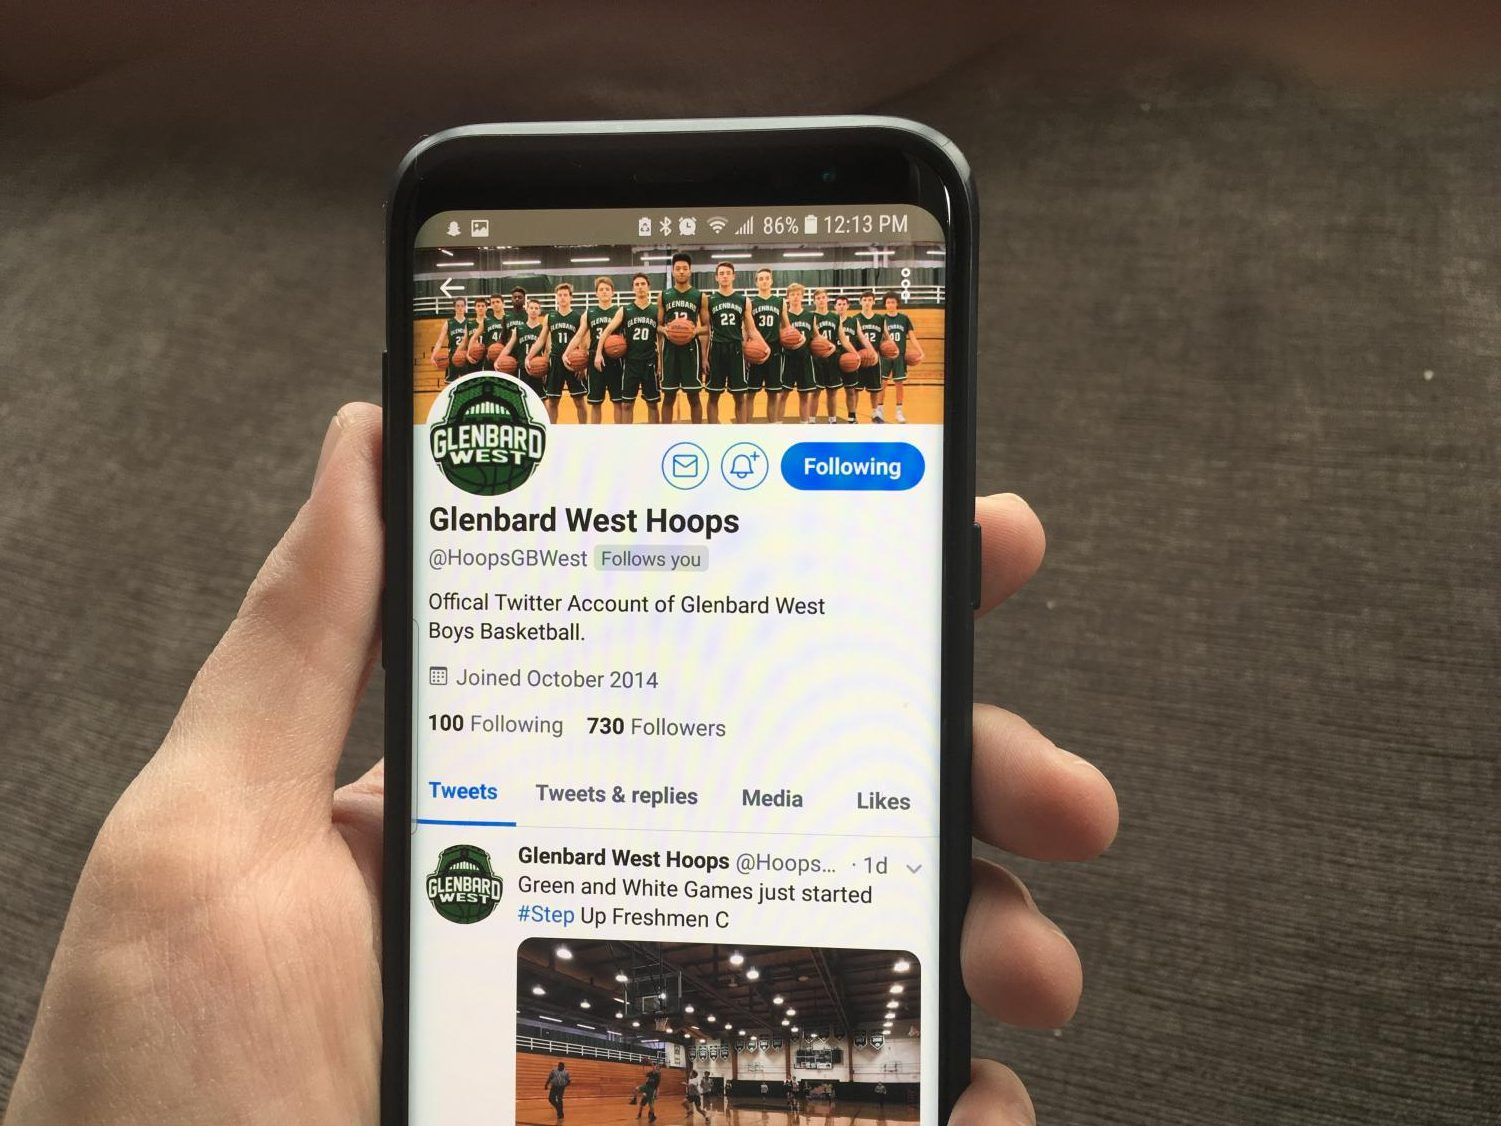 Boys basketball shares information on Twitter using the handle @HoopsGBWest.  The last couple posts have featured the Freshmen C team practicing and a retweeted article about varsity senior Evan Taylor committing to Southern Illinois University to play basketball.